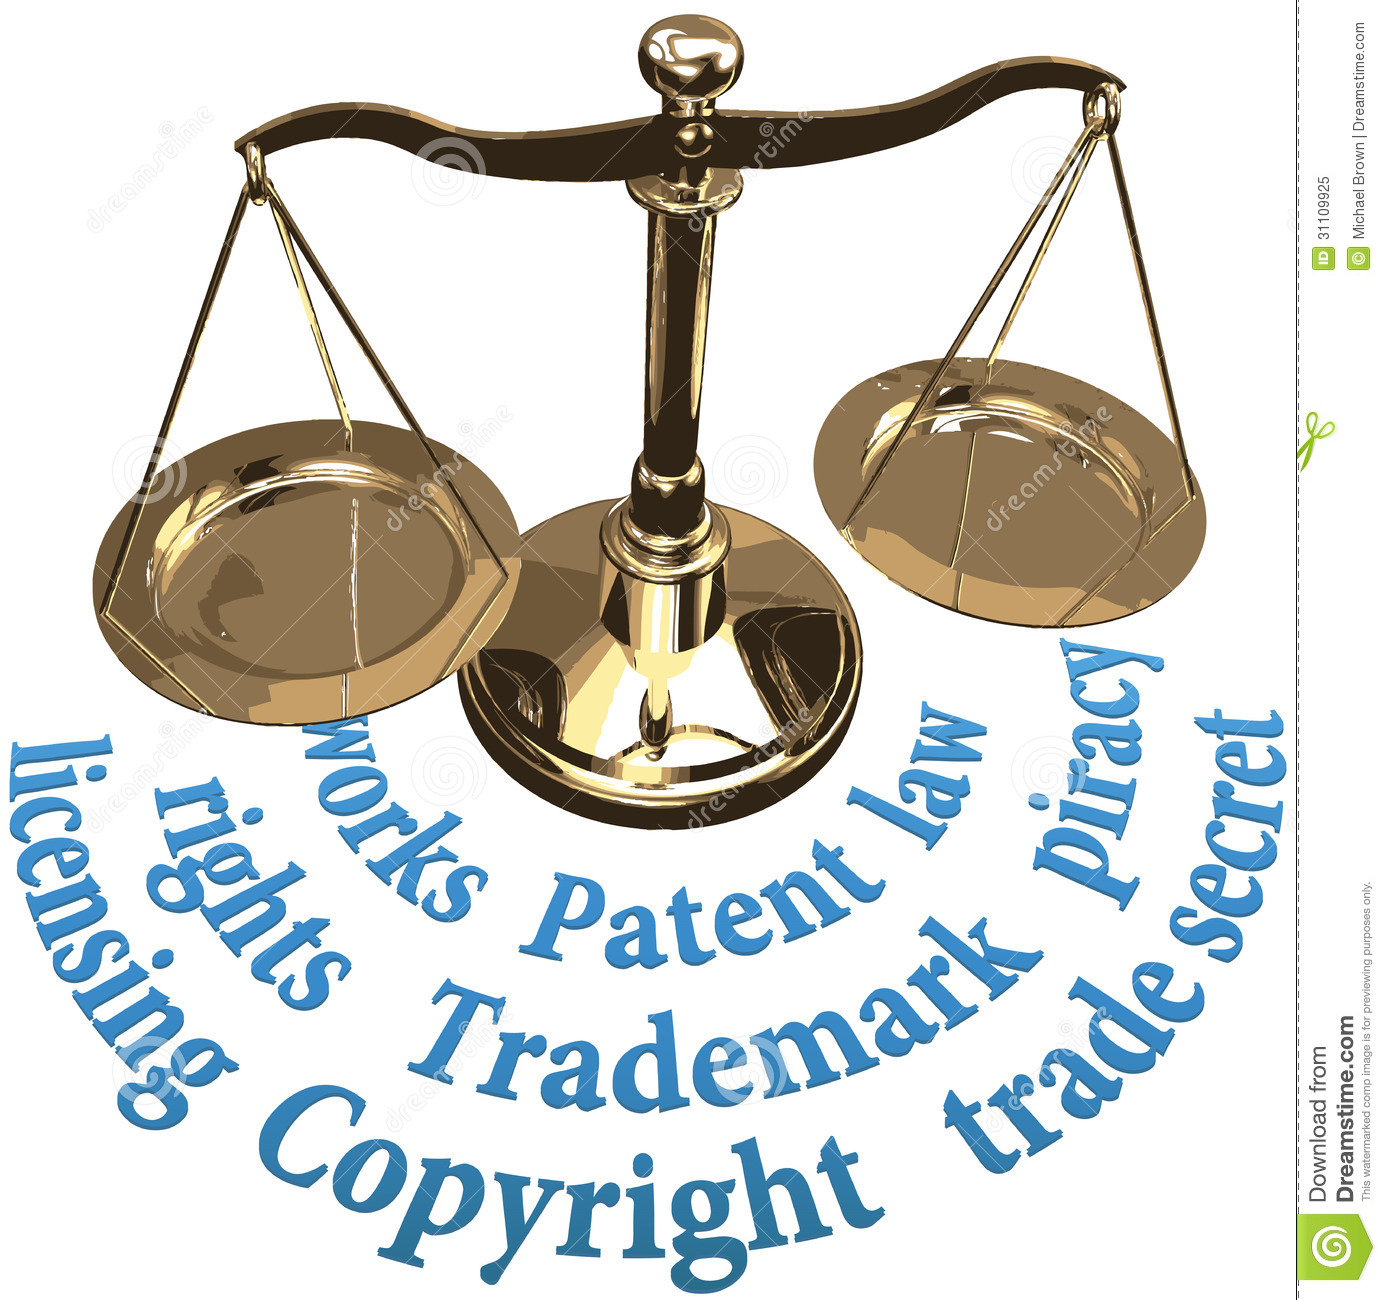 Scale IP Rights Legal ...